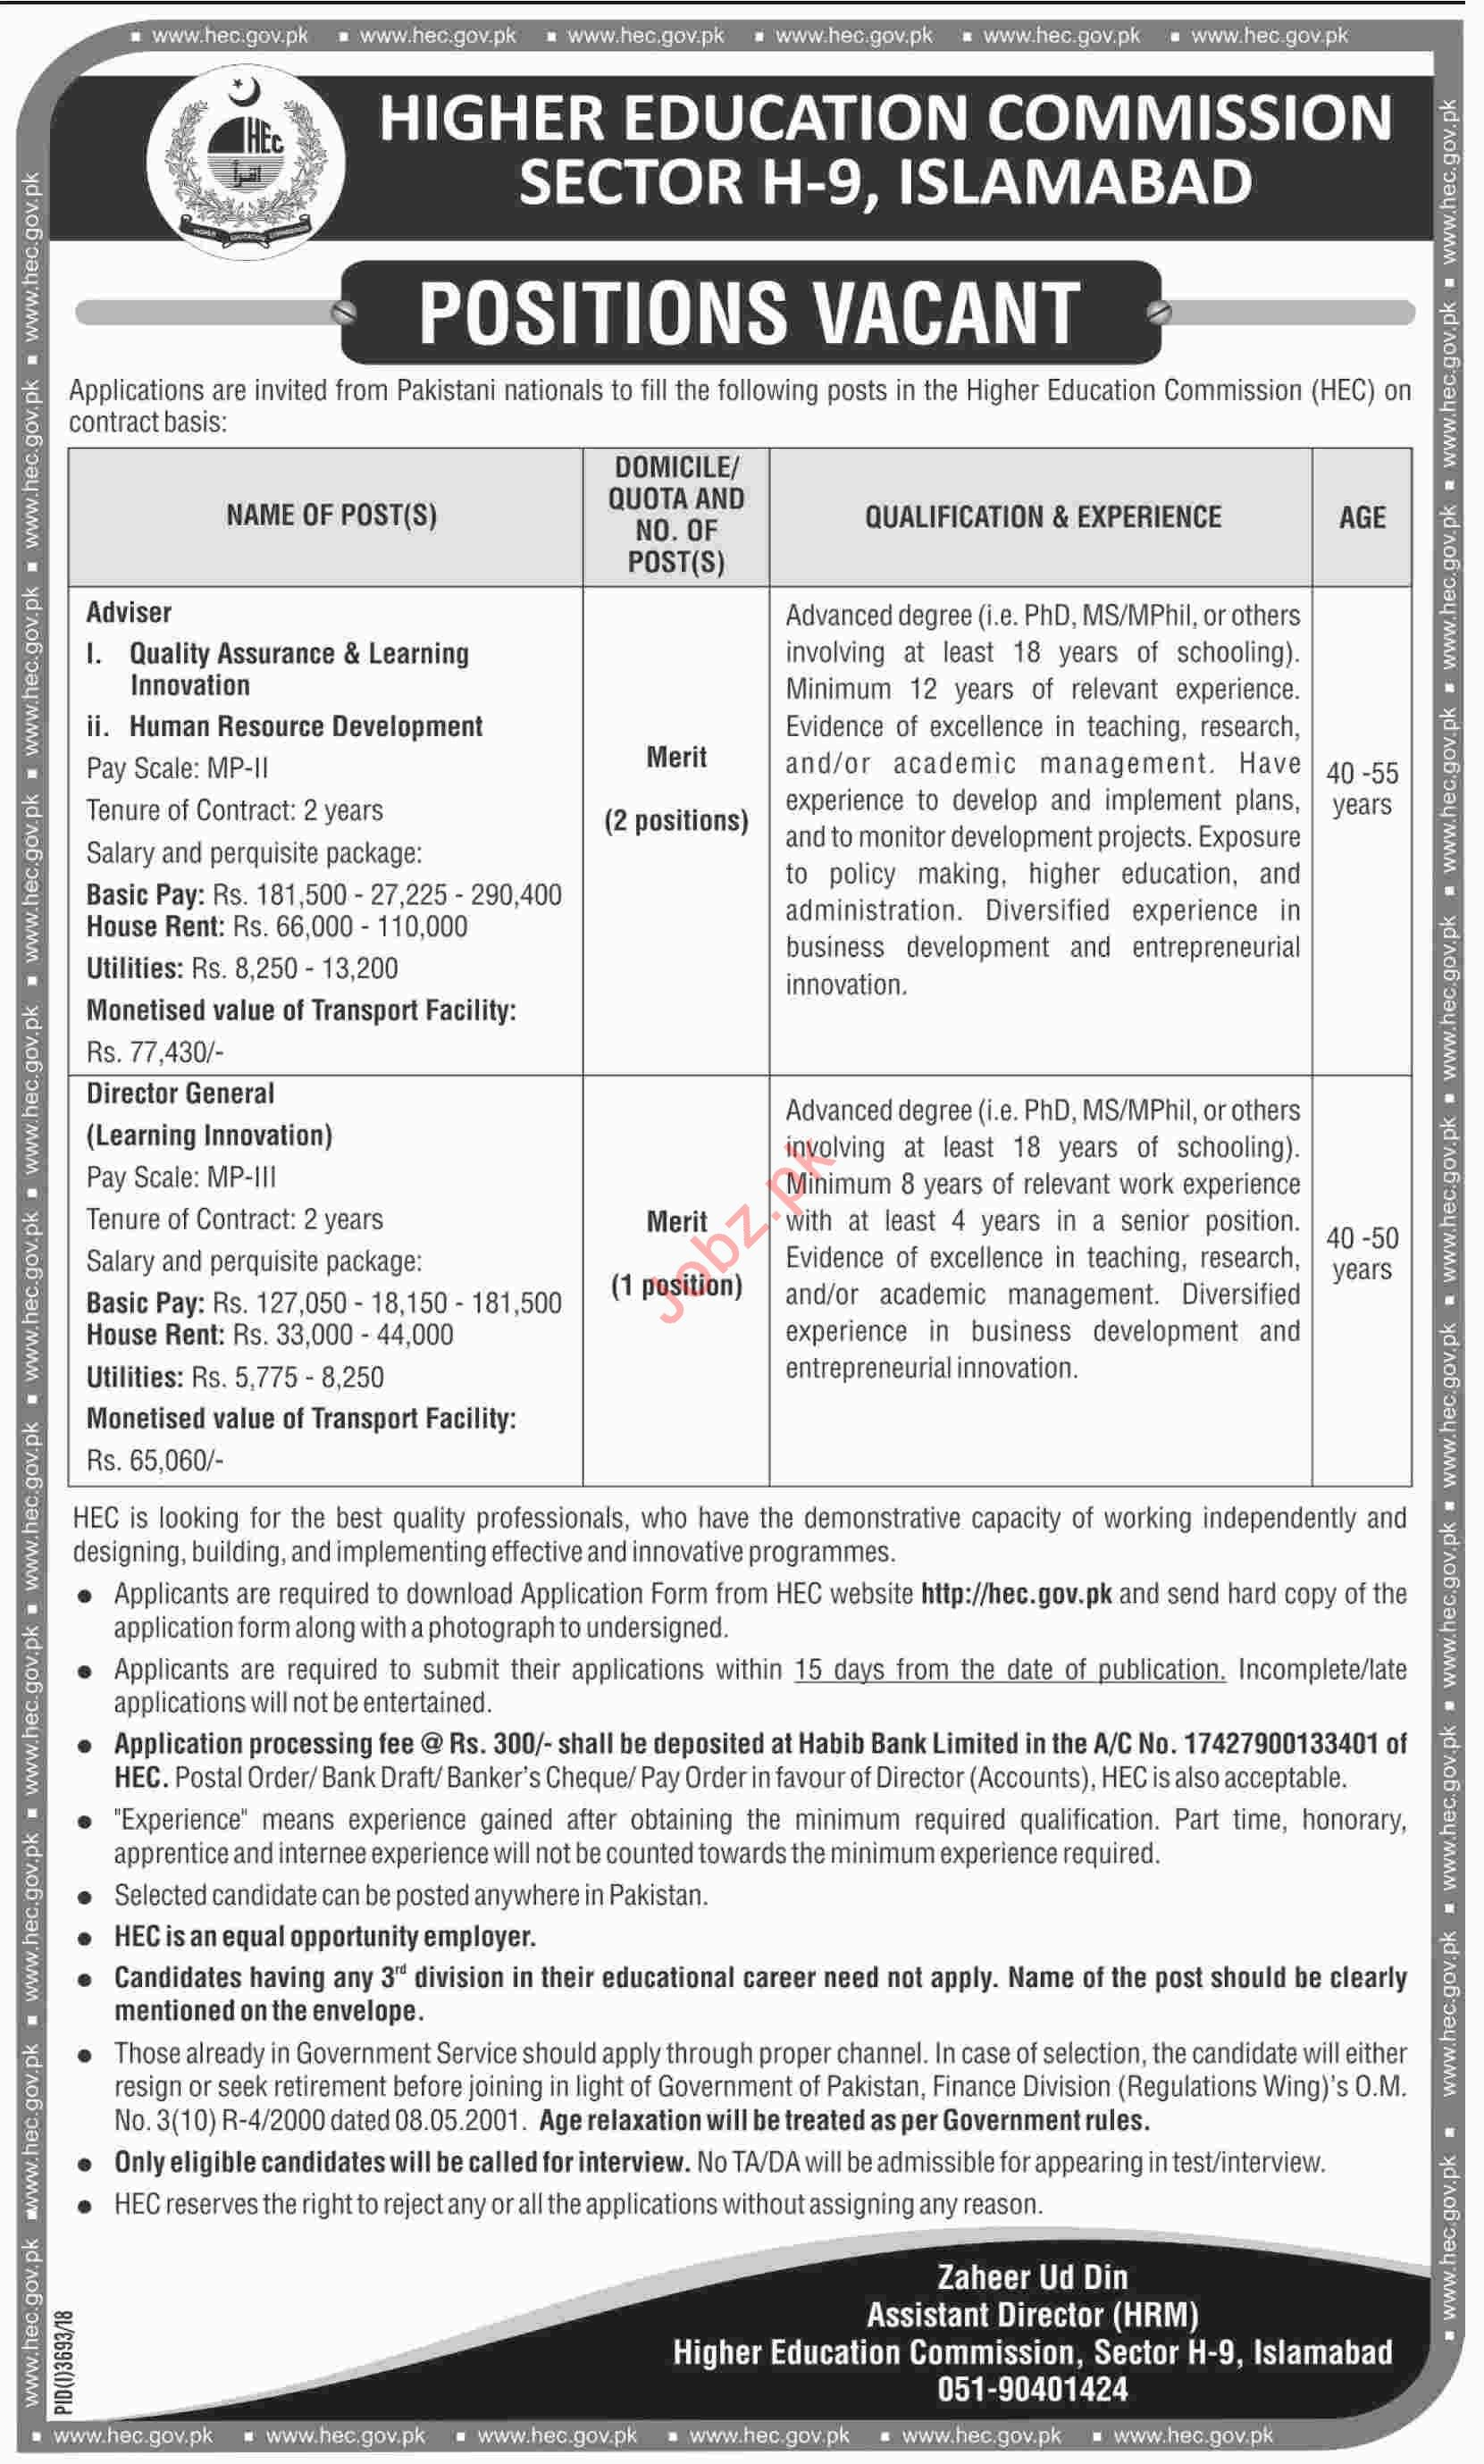 HEC Adviser Quality Assurance and Learning Innovation Jobs